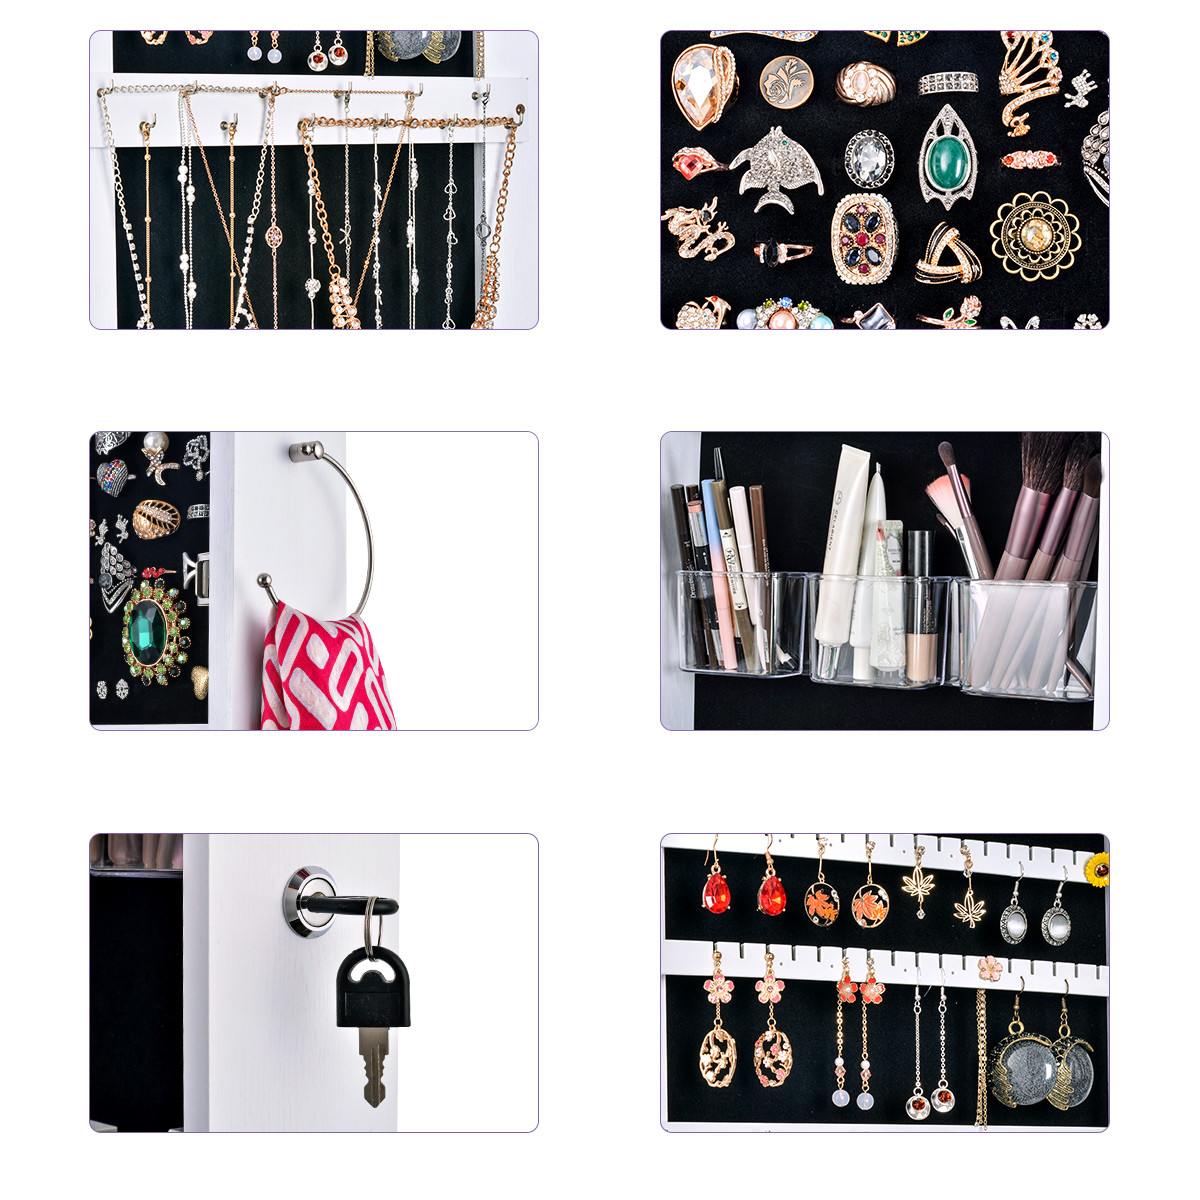 Multifunctional LED Jewelry Mirror Cabinet Wall Door Mounted Jewelry Cabinet Lockable Armoire Organizer Dresser Mirror with LED 5